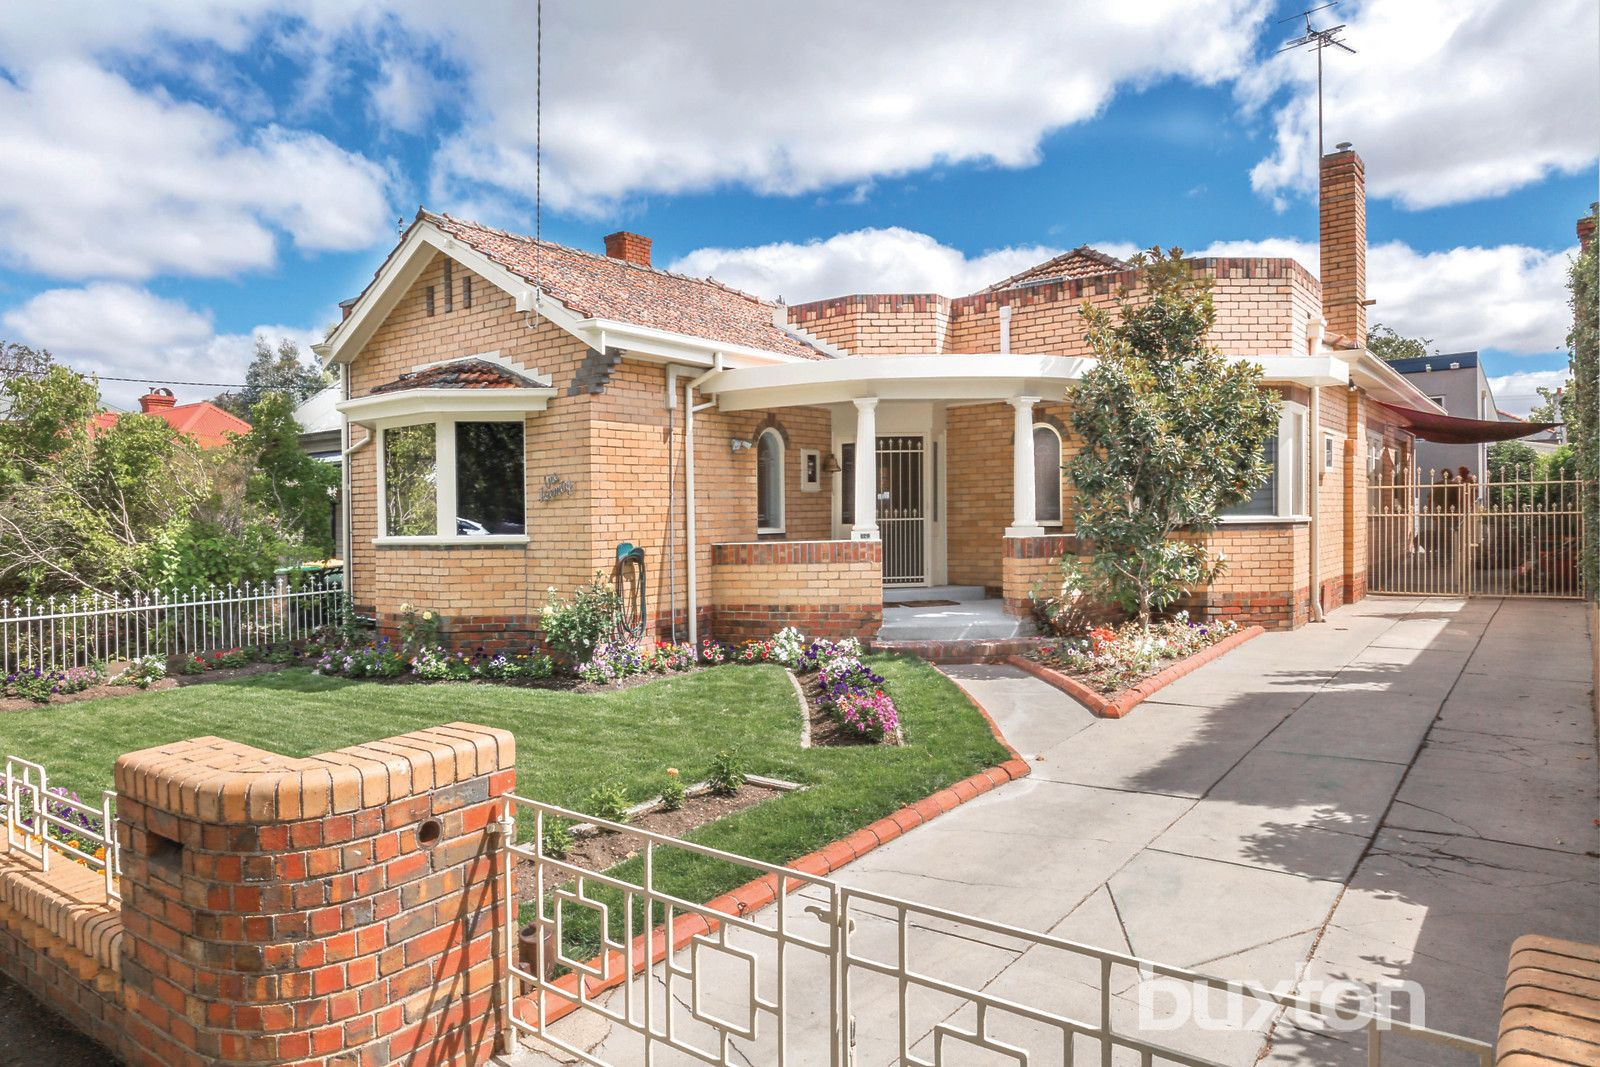 120 Drummond Street South, Ballarat Central VIC 3350, Image 0